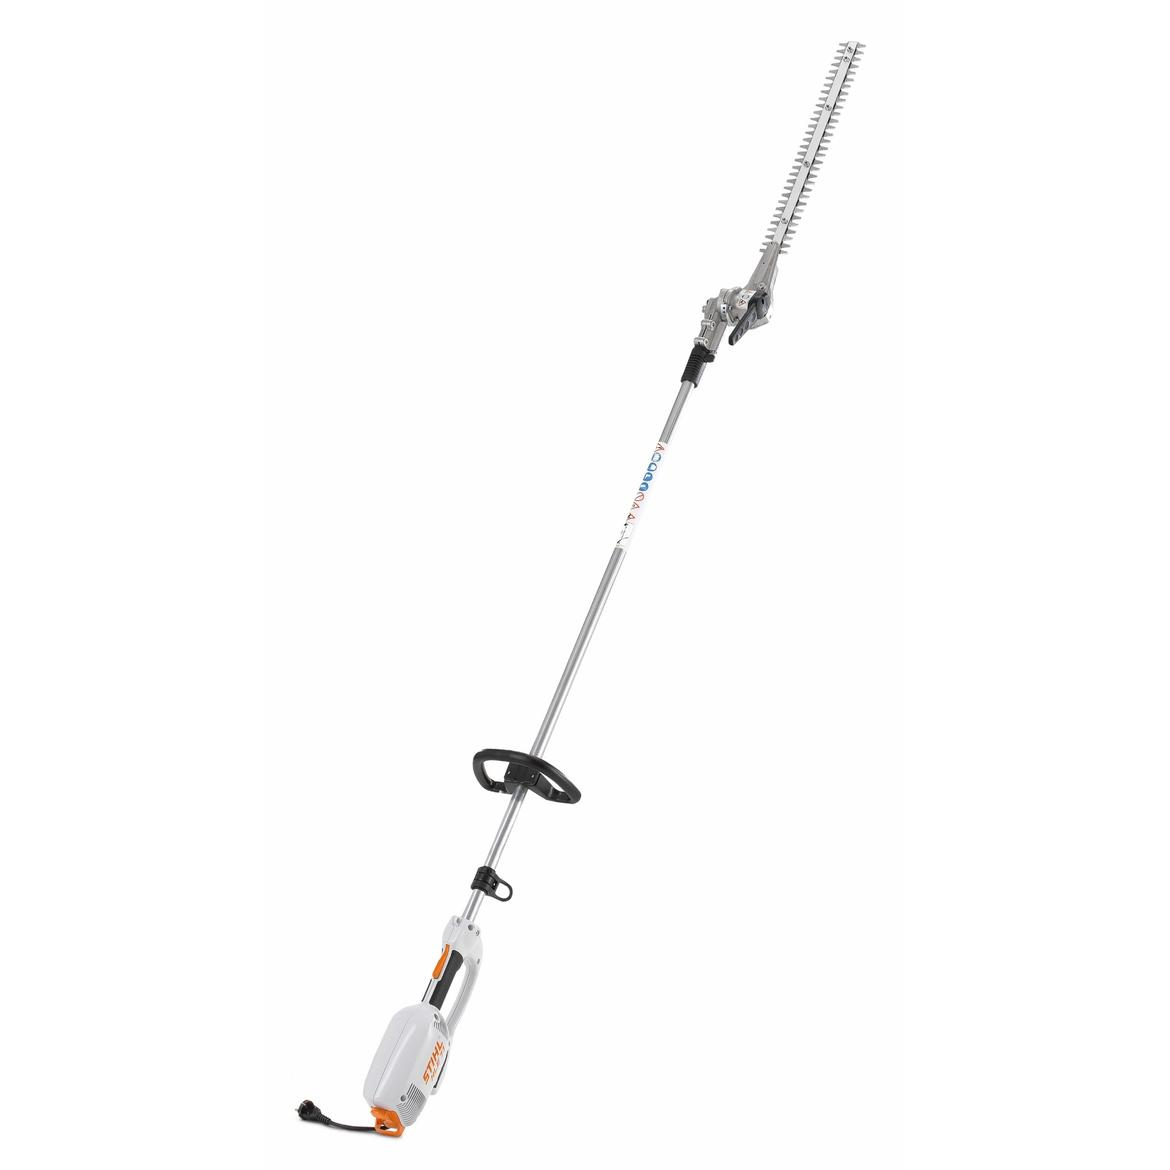 Stihl Hle71 Electric Long Reach Hedge Trimmer Radmore